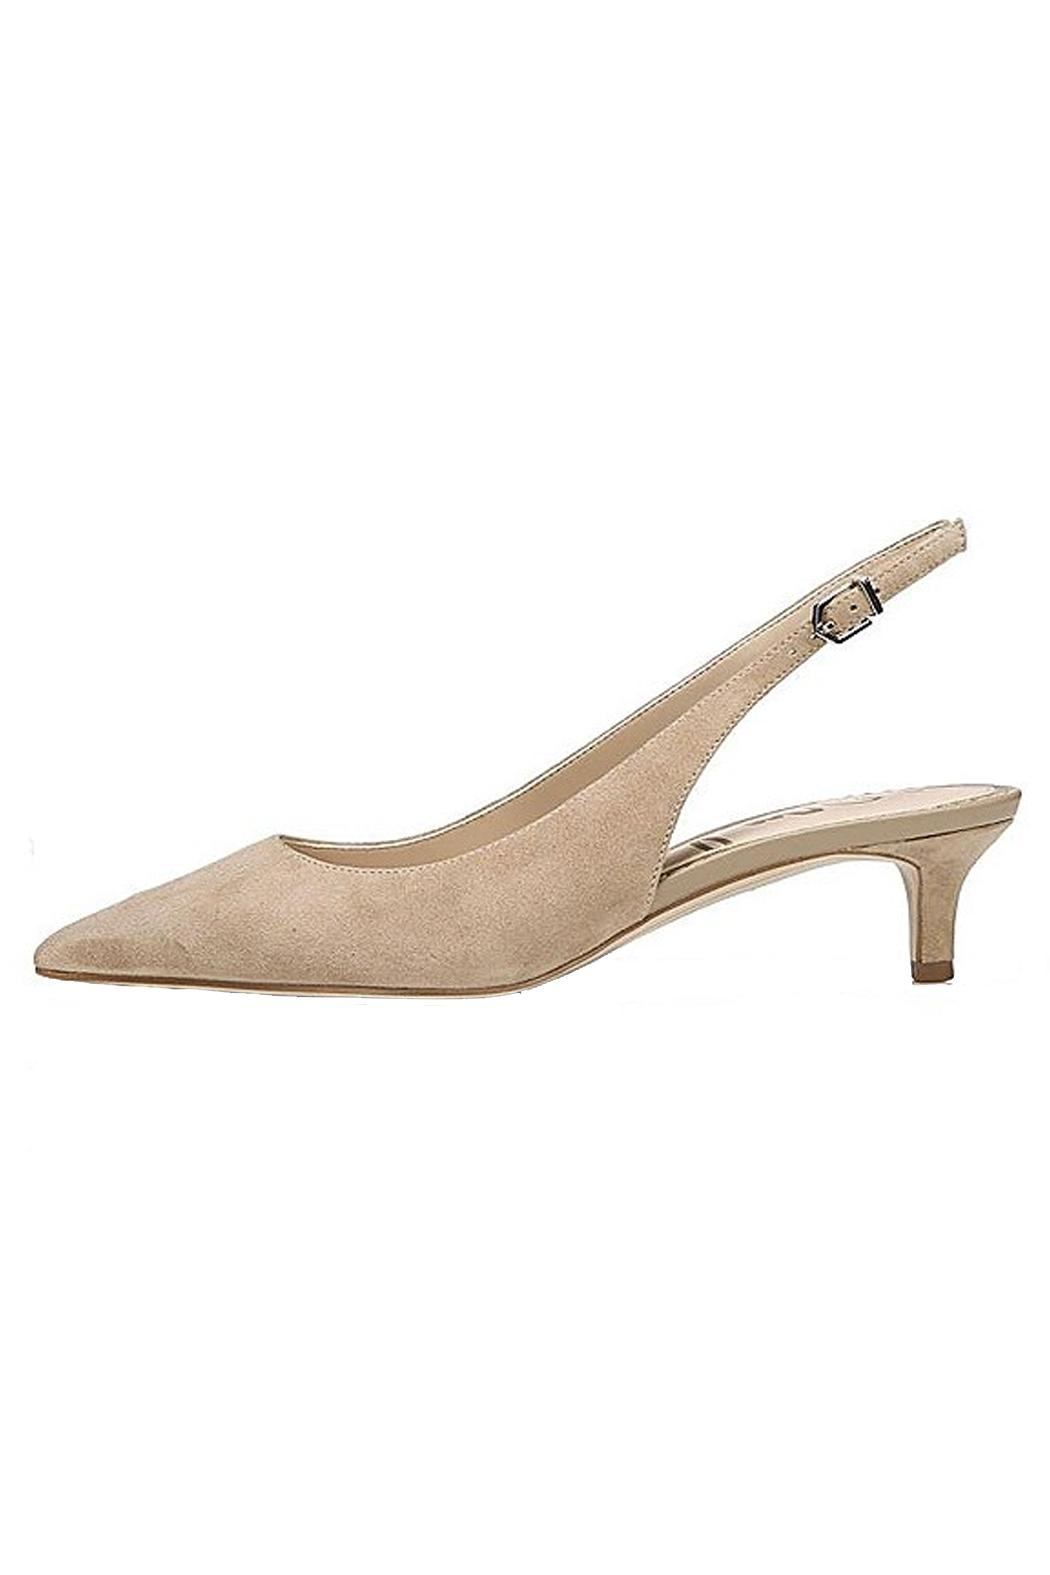 Sam Edelman Taupe Kitten Heel Slingback from South Carolina by ...